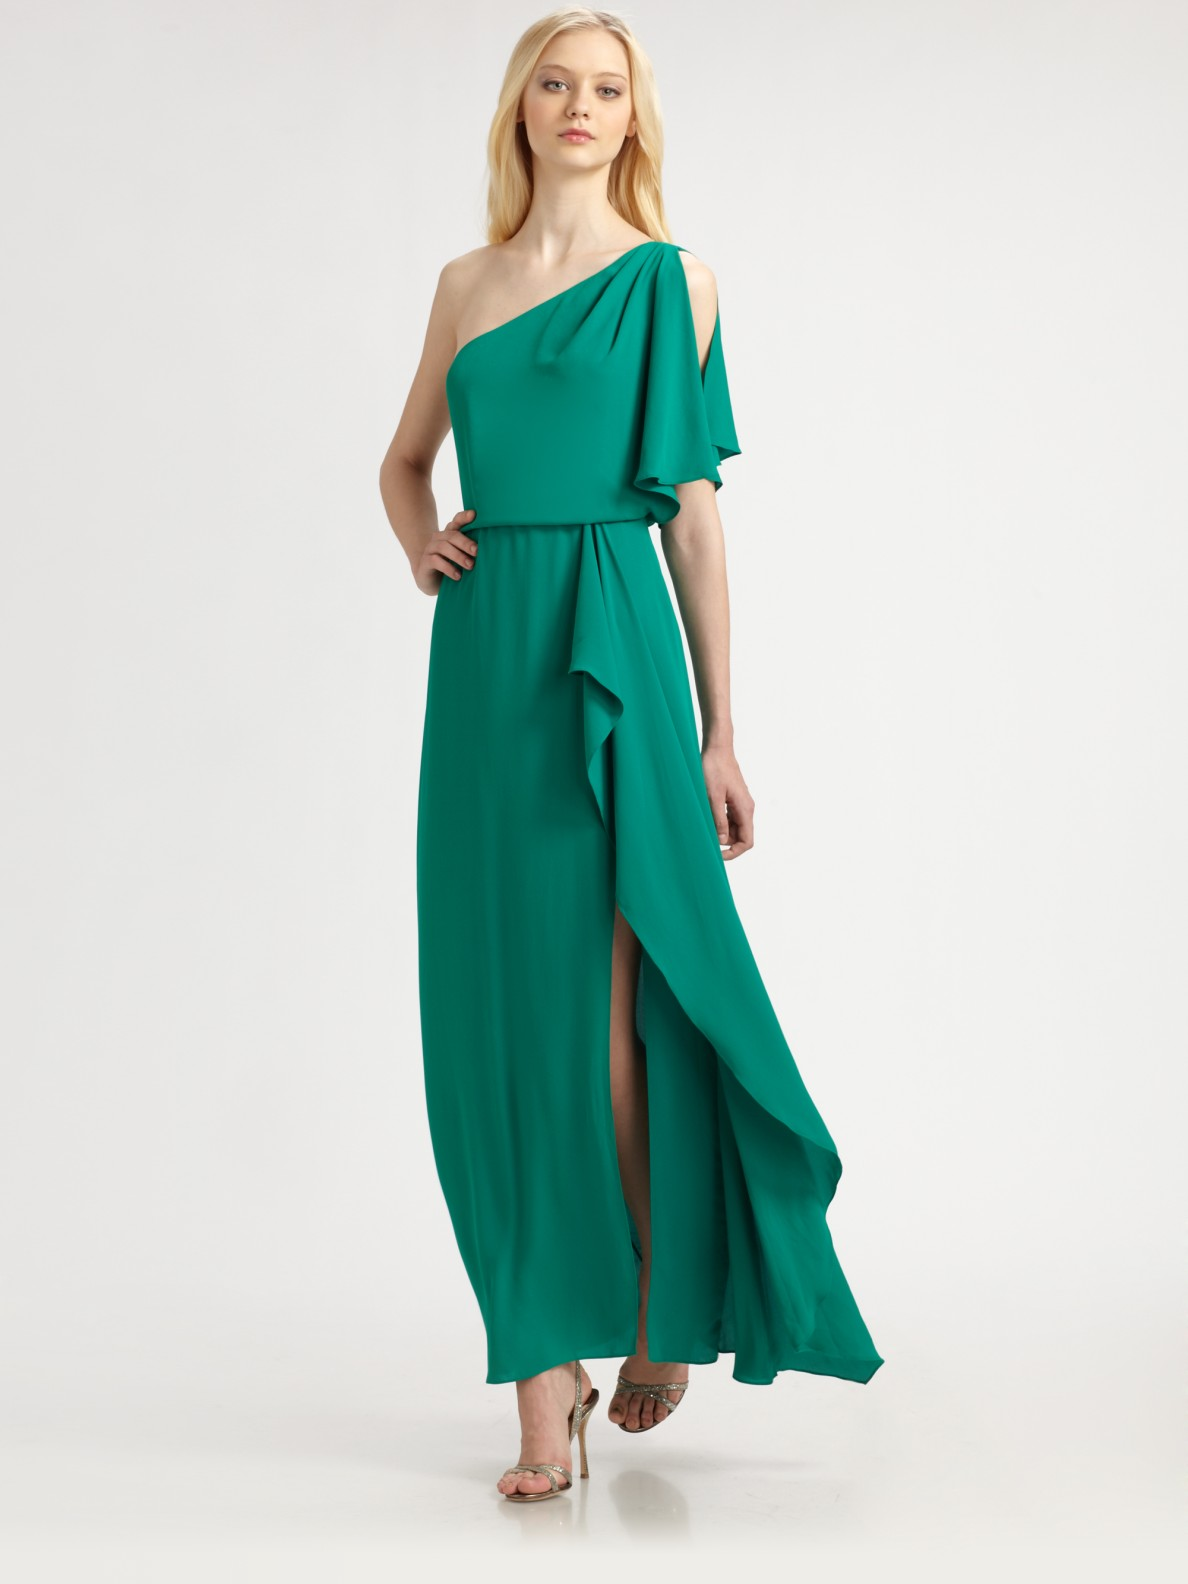 Lyst - Bcbgmaxazria Kendal Asymmetrical Gown in Green